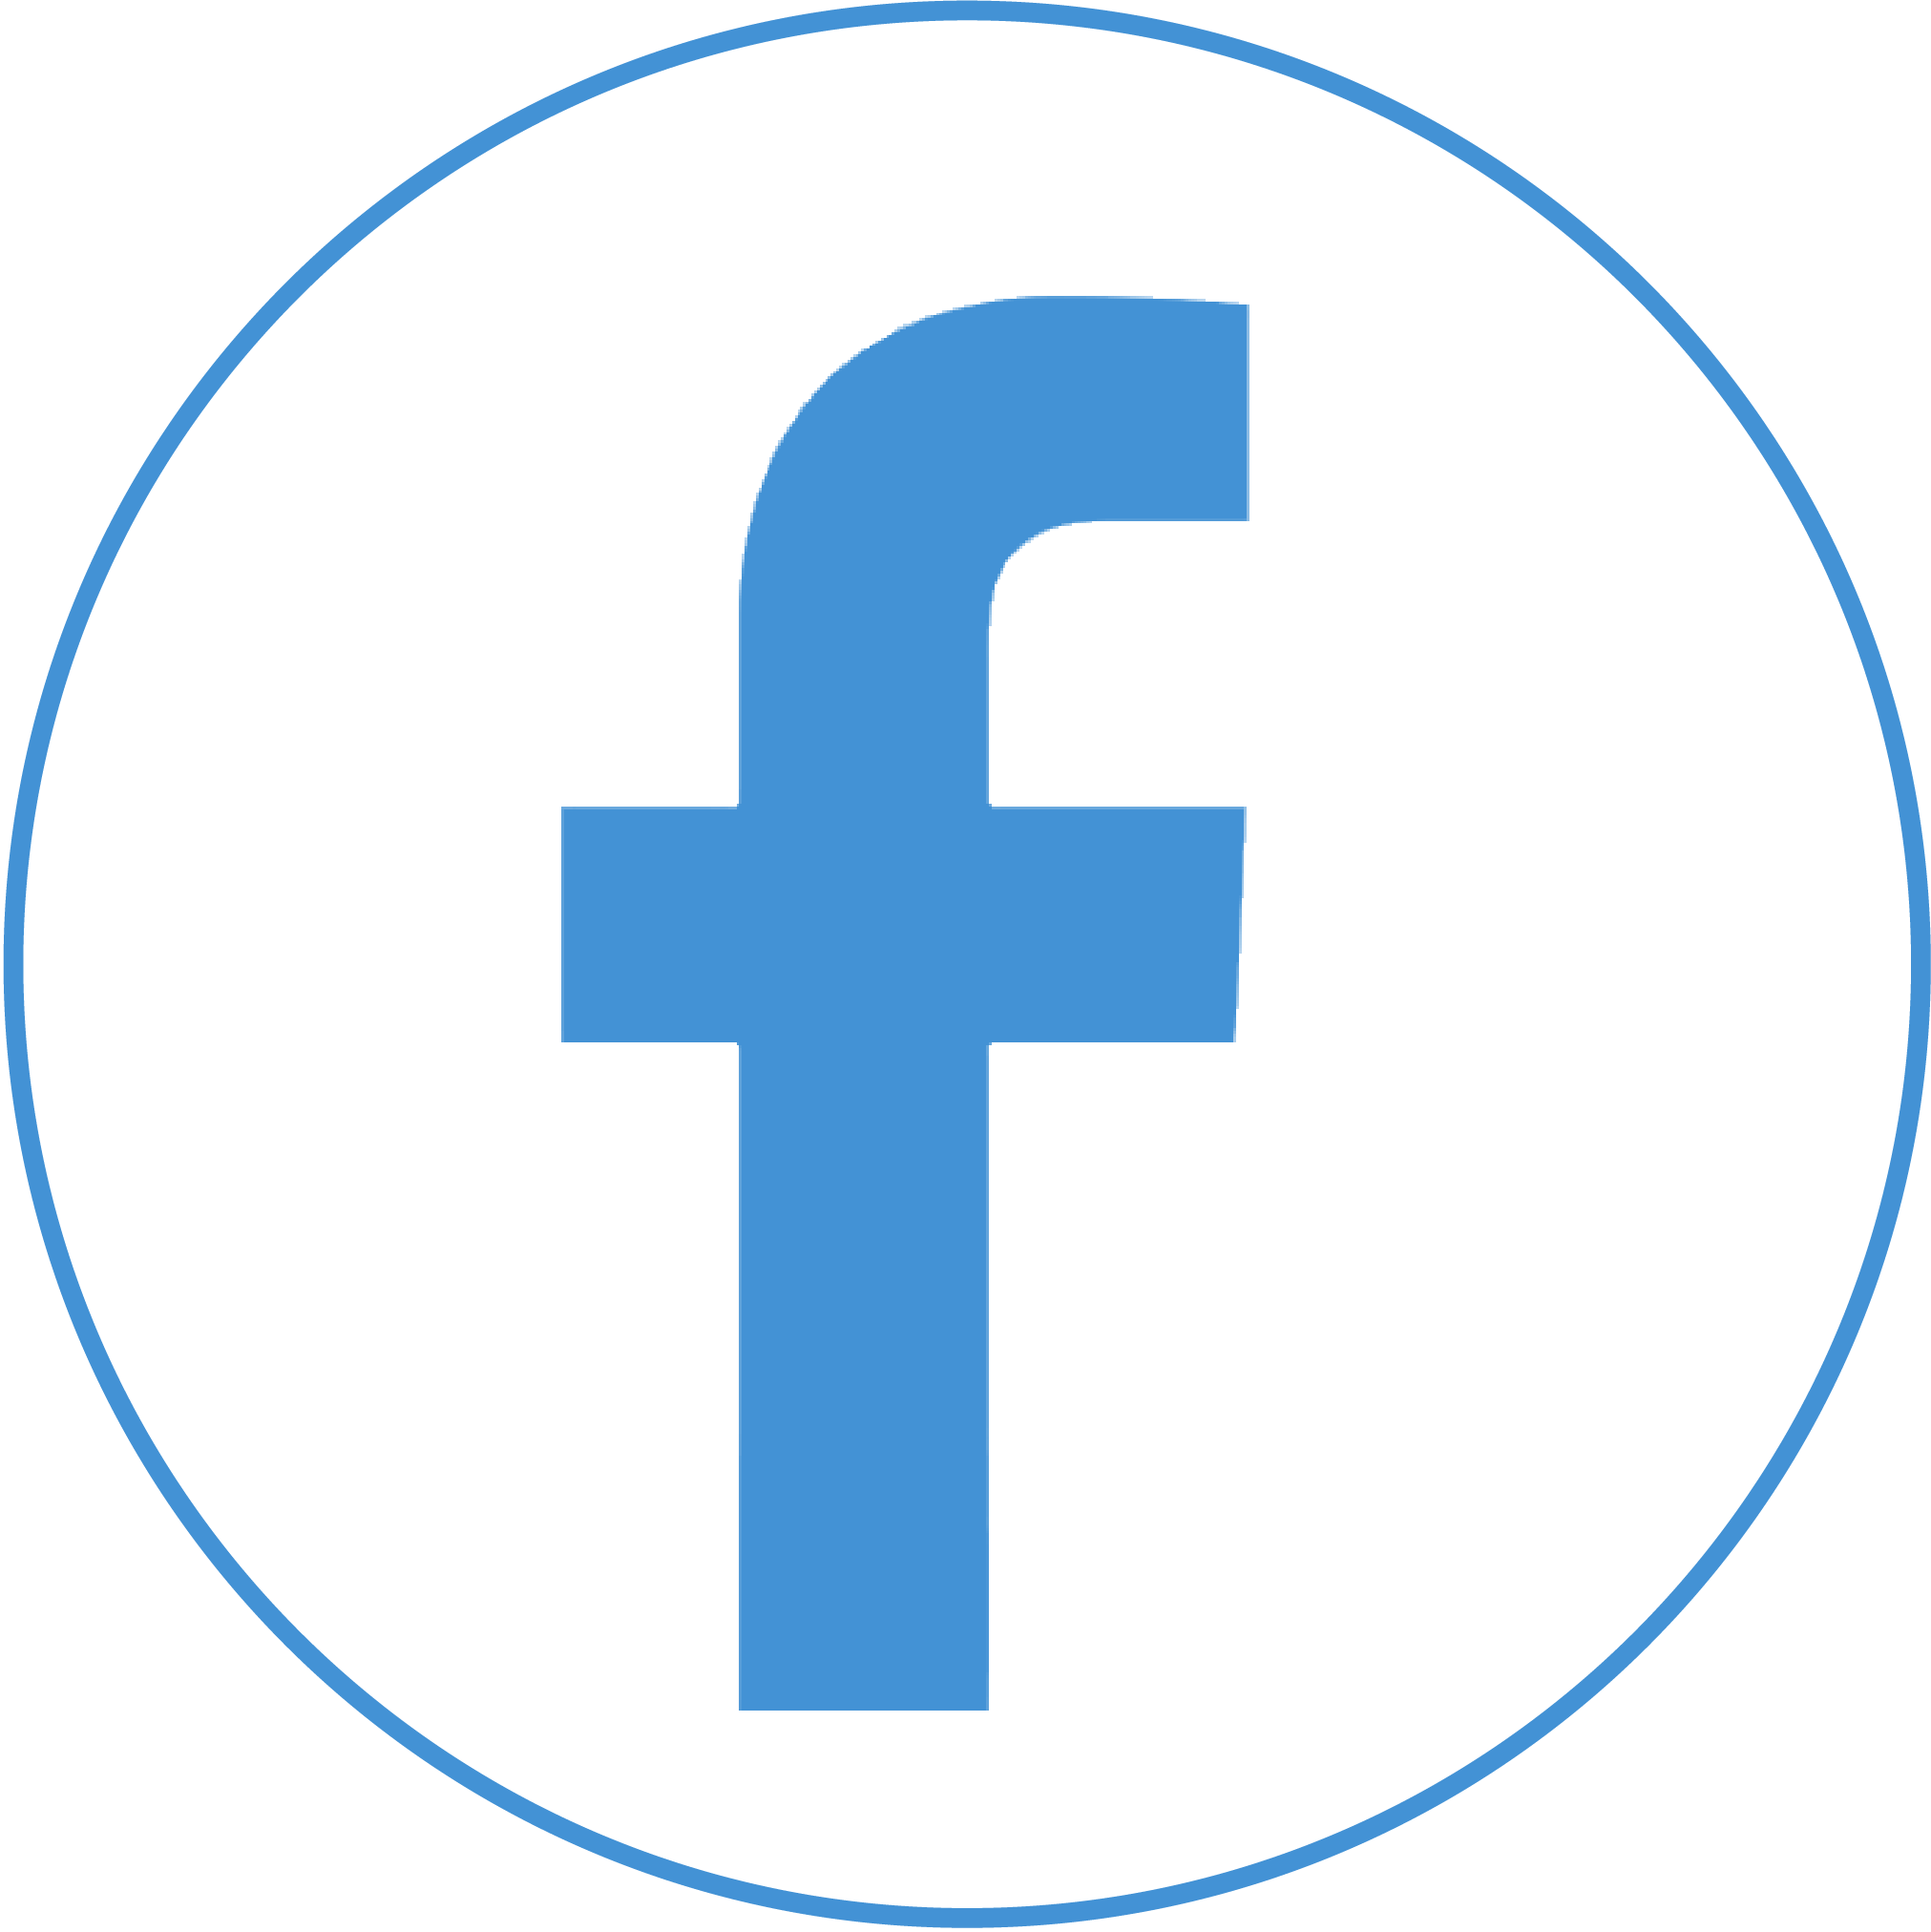 Facebook Png Hd PNG Image